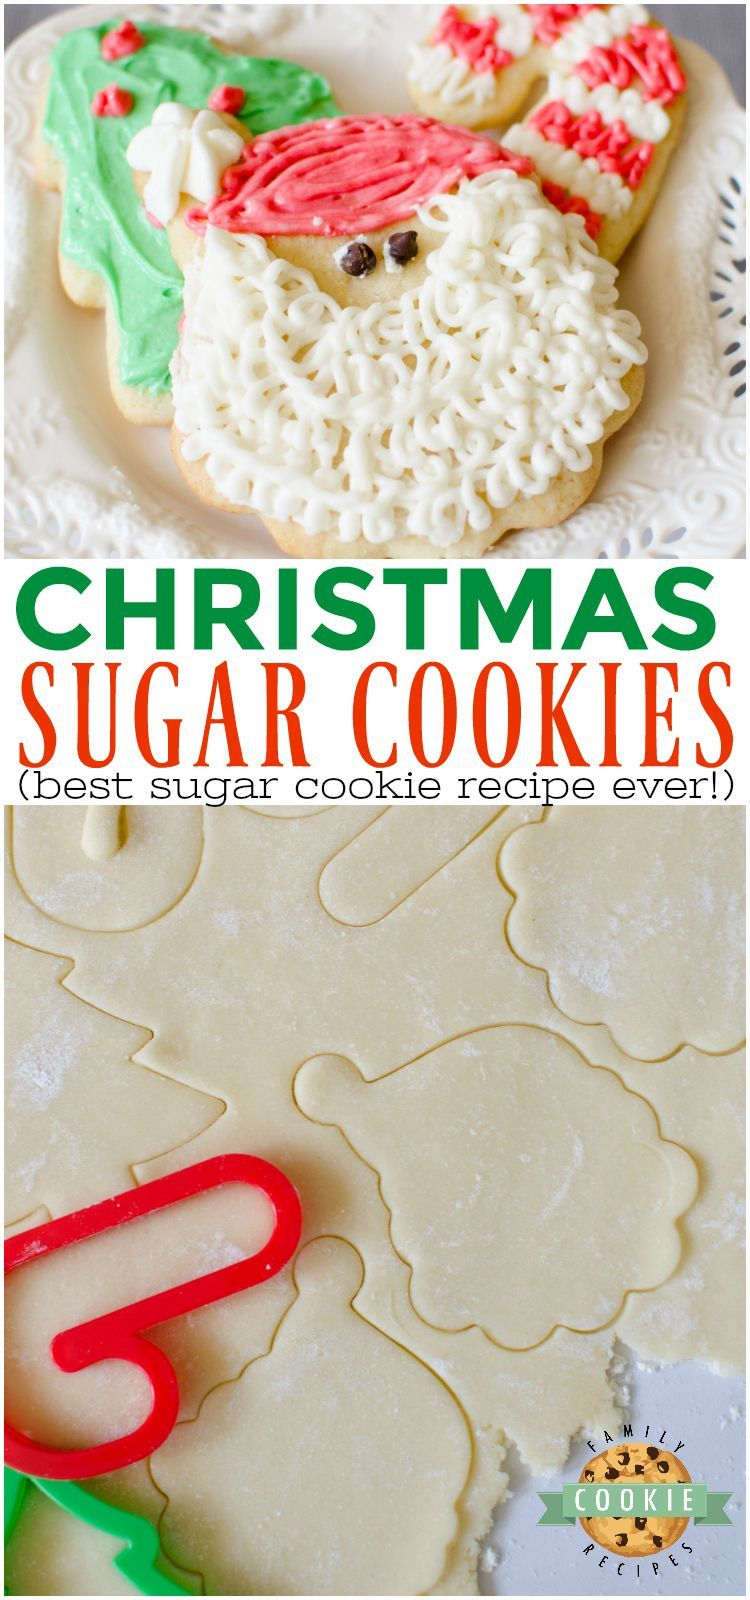 Christmas Sugar Cookies are a necessary holiday tradition at our house! This sim... - #christmas #cookies #holiday #house #necessary #sugar #tradition - #HolidayCookies